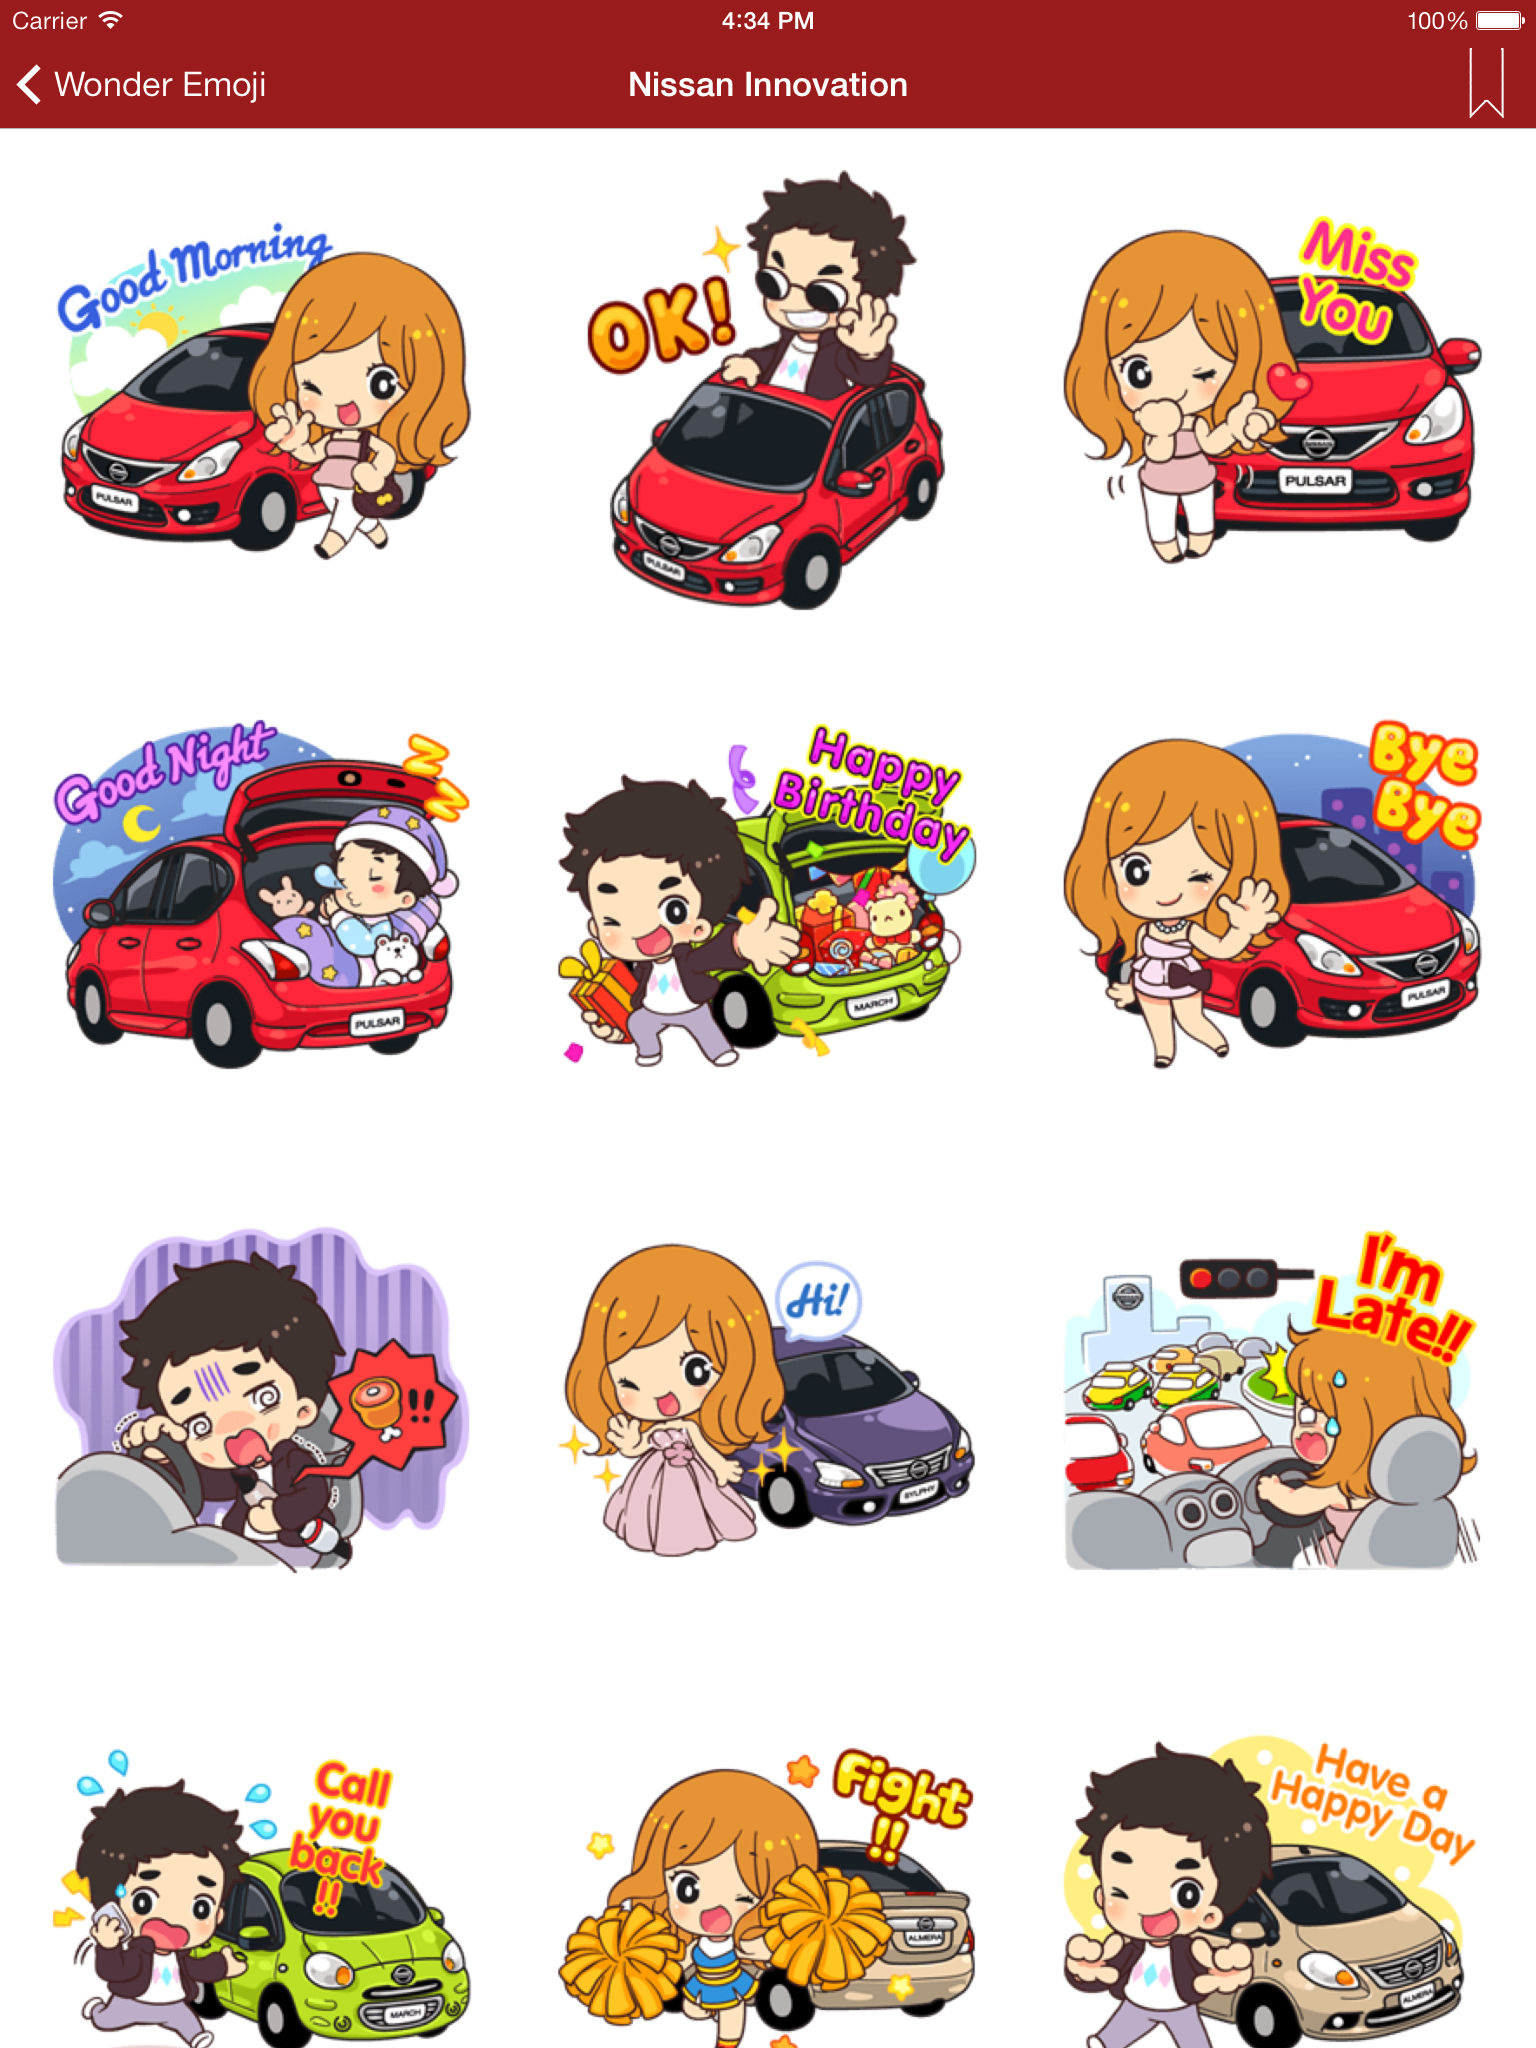 Wonder Emoji Emoji Emoticon Sticker For Whatsapp Facebook